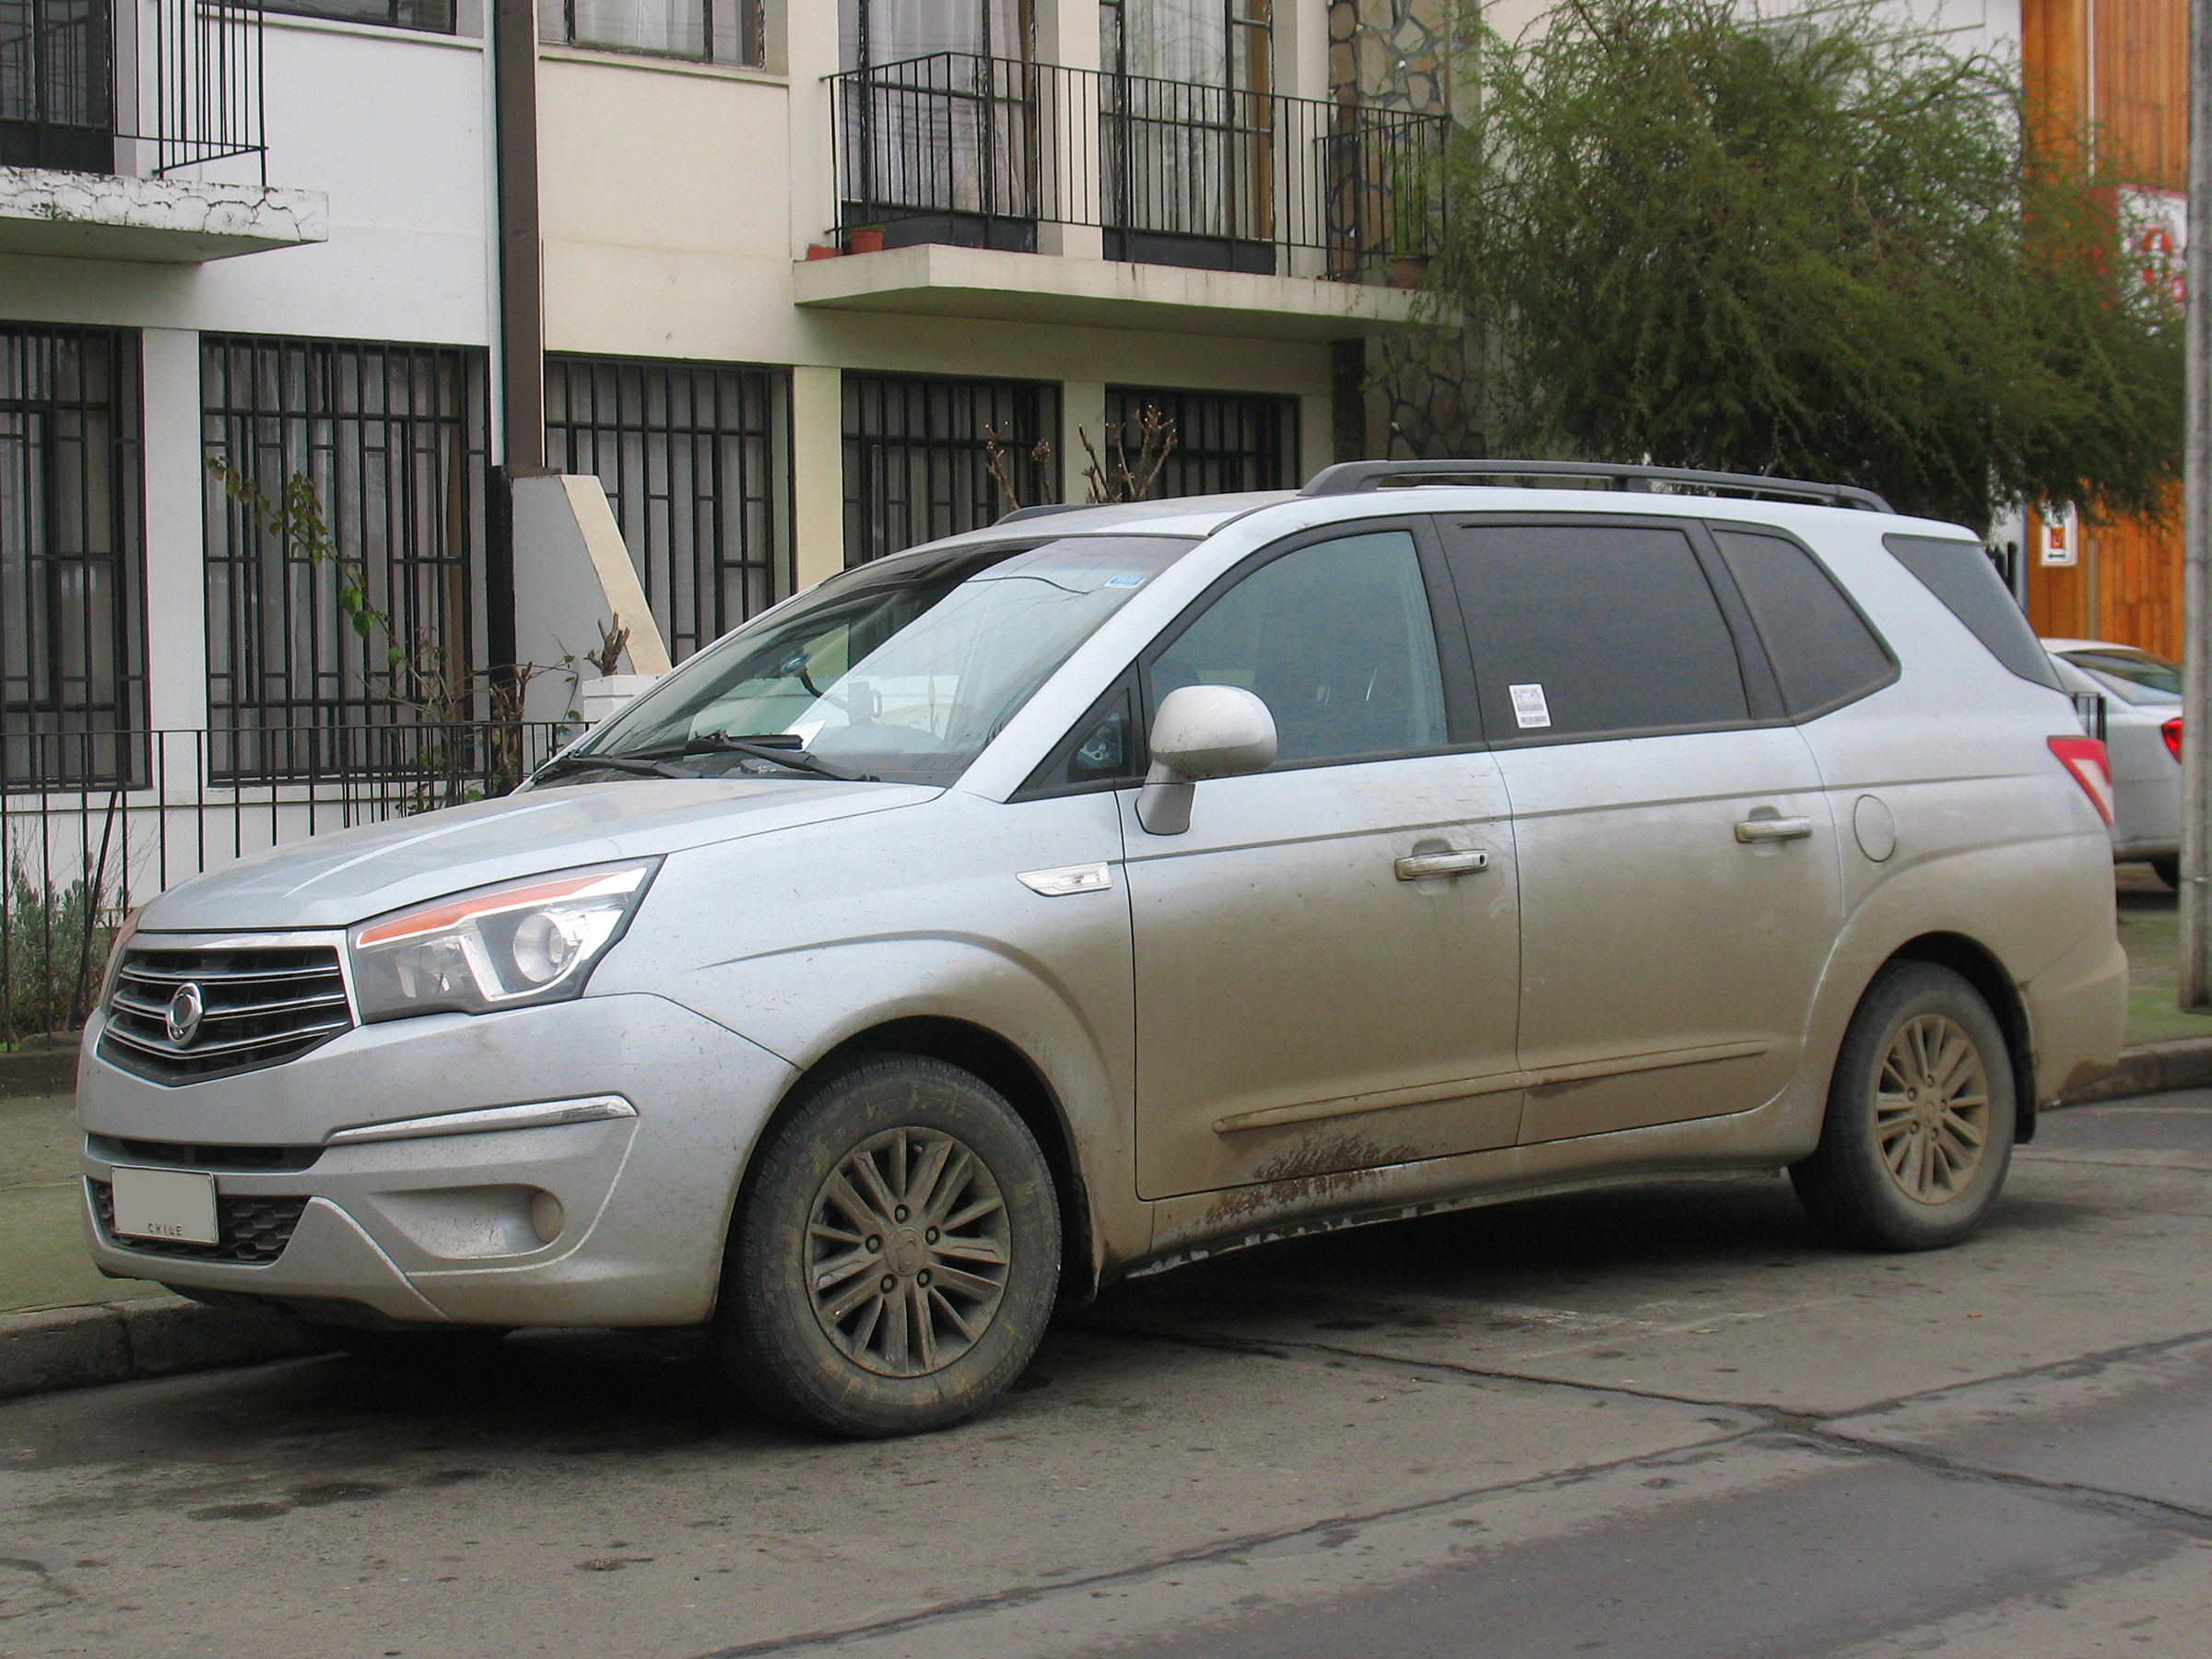 SsangYong Stavic 2.0 2013 photo - 1